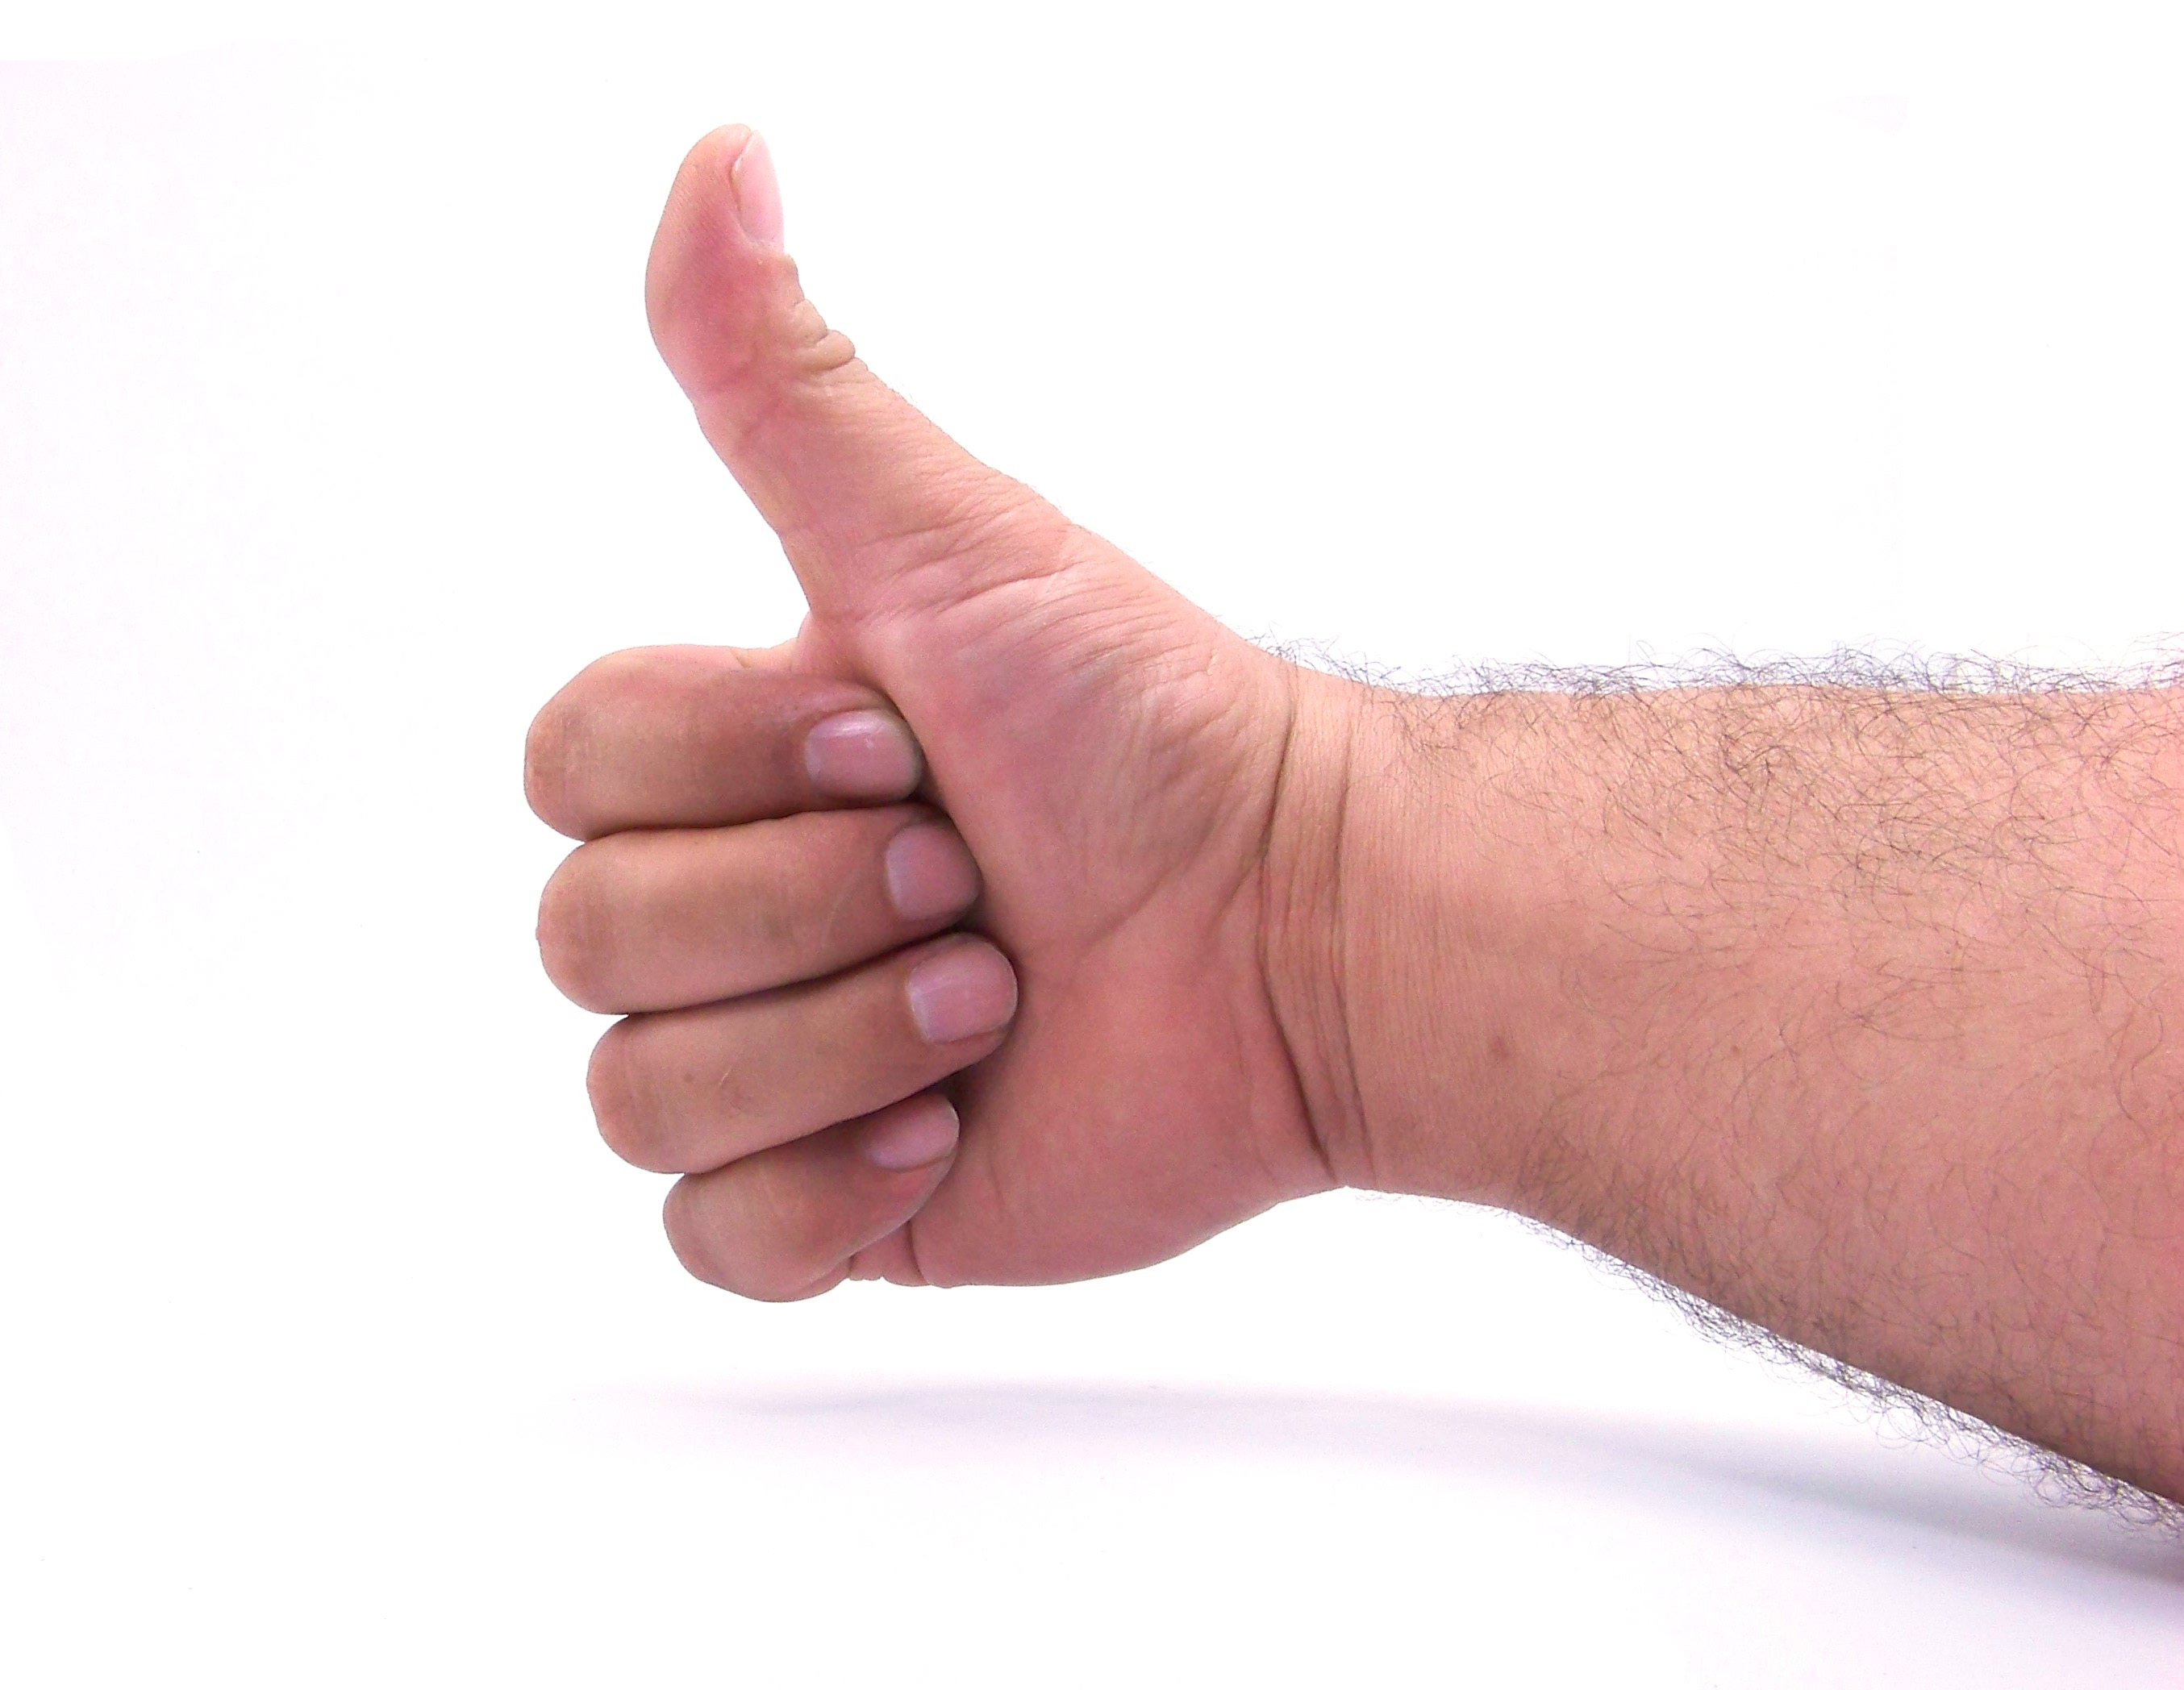 Thumbs up, Abstract, Show, One, Palm, HQ Photo